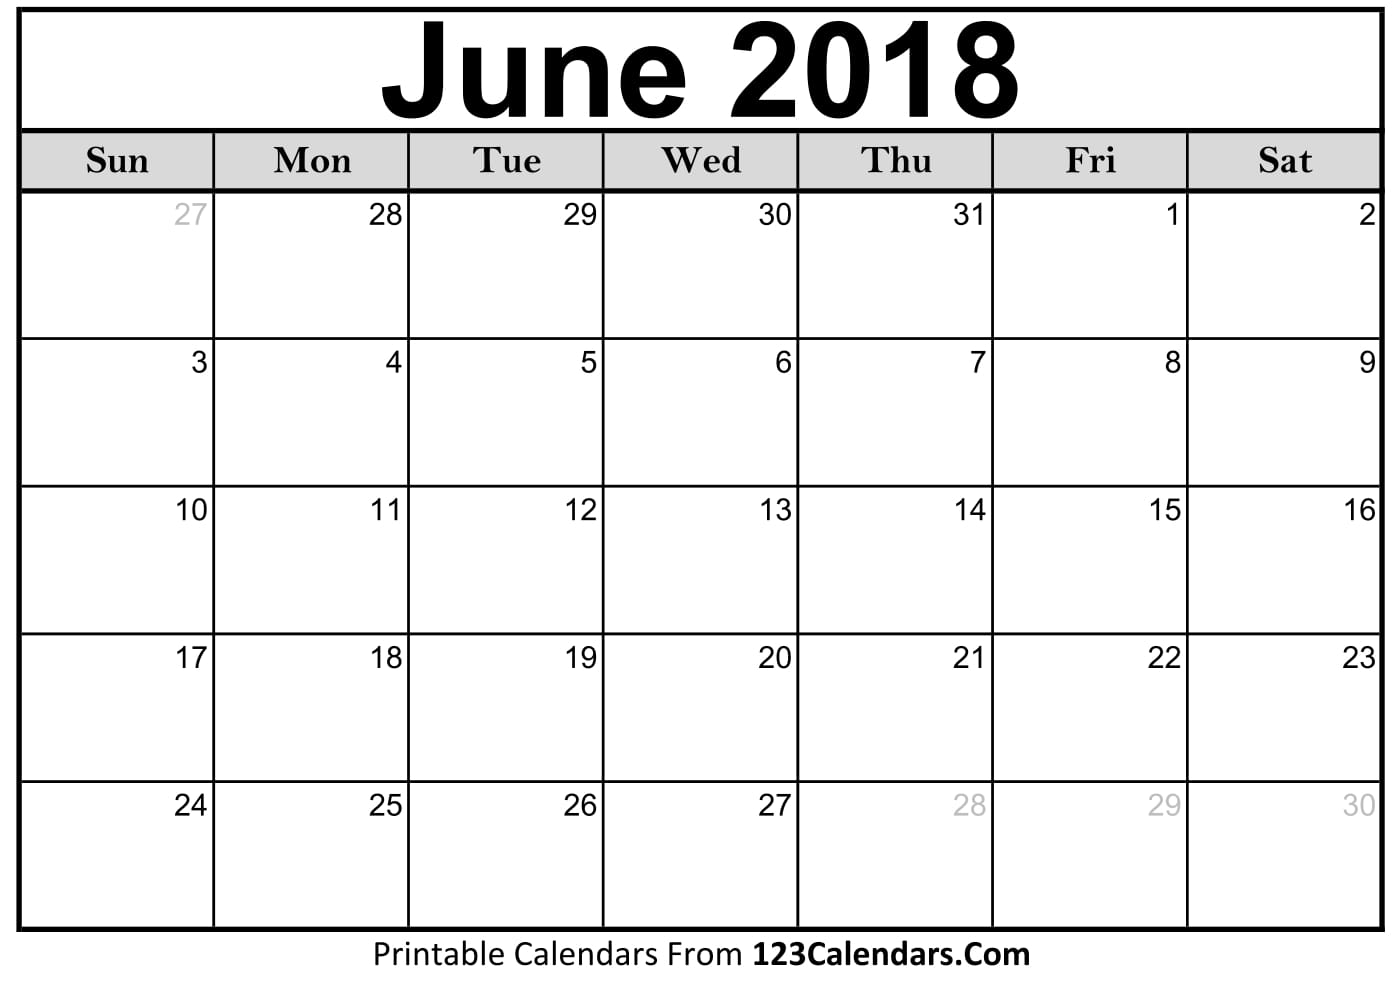 June 2018 Calendar Images Download